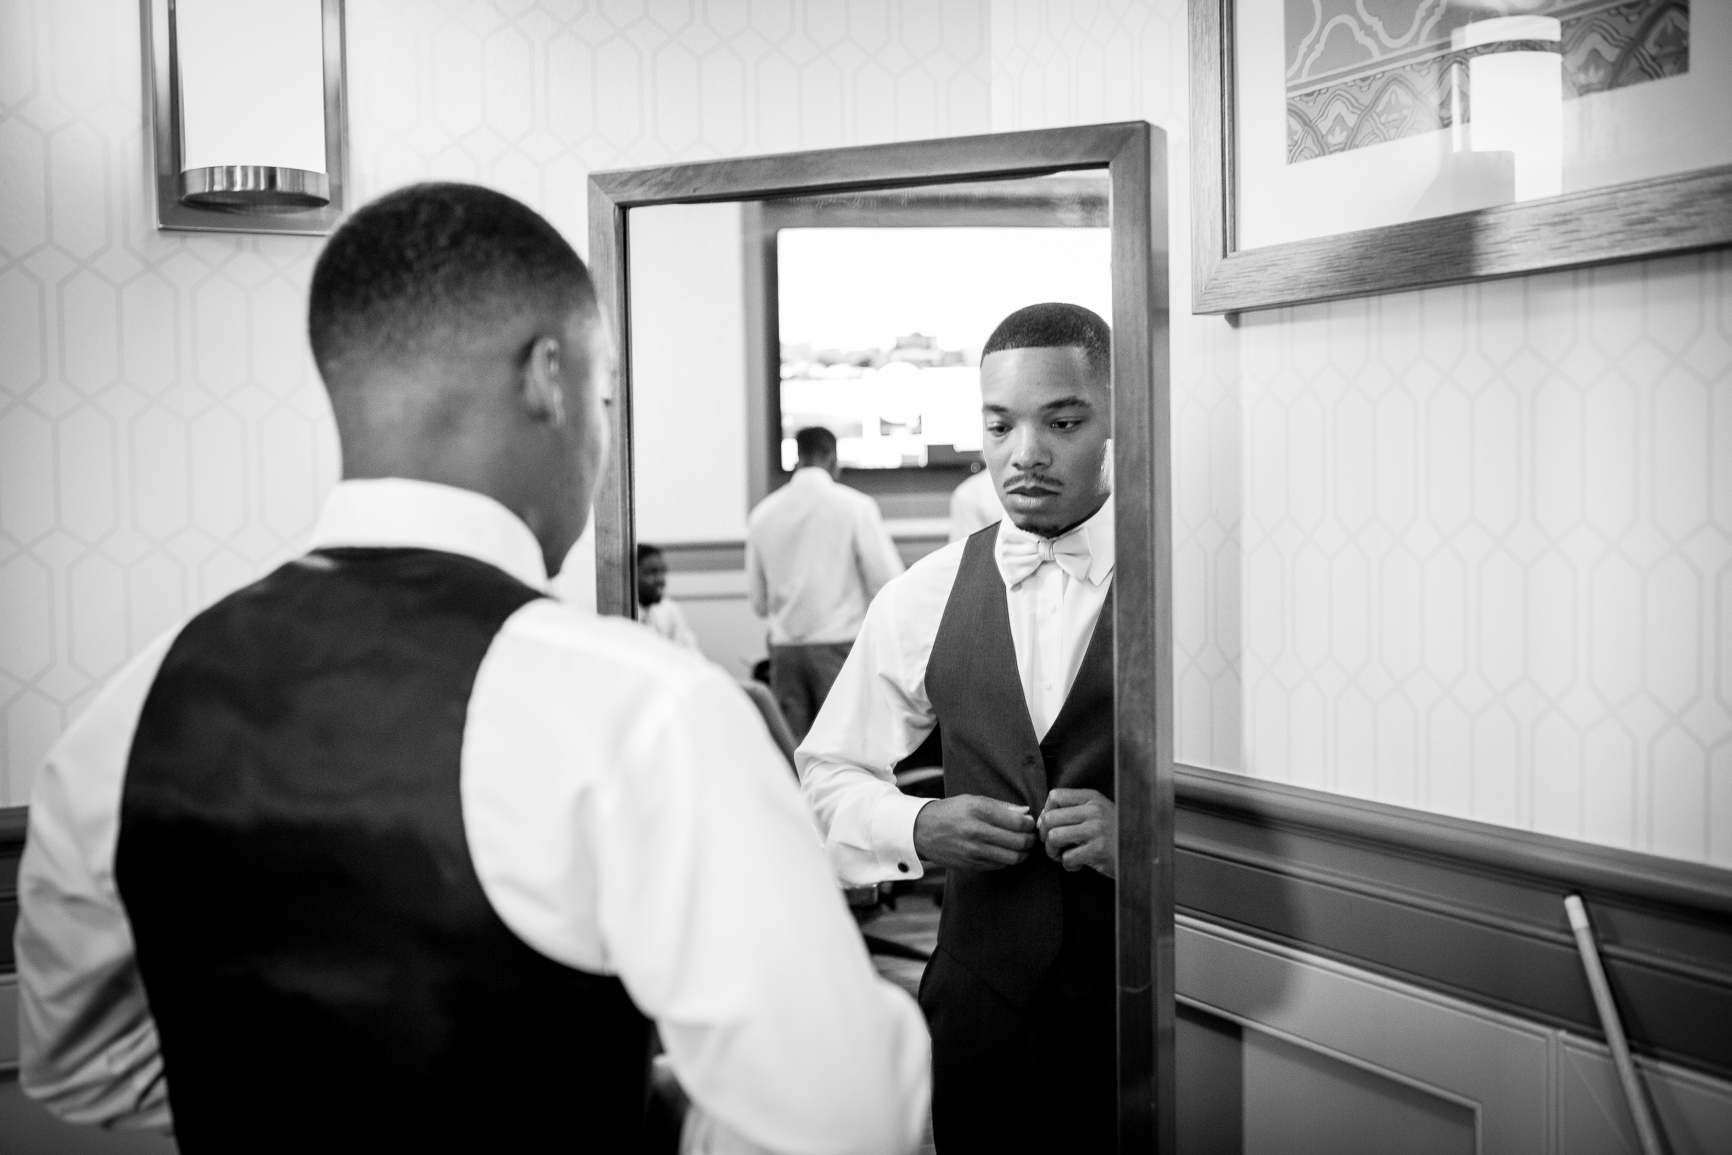 Noah's  Morrisville Raleigh wedding photographer - 101 studio llc -7.jpg